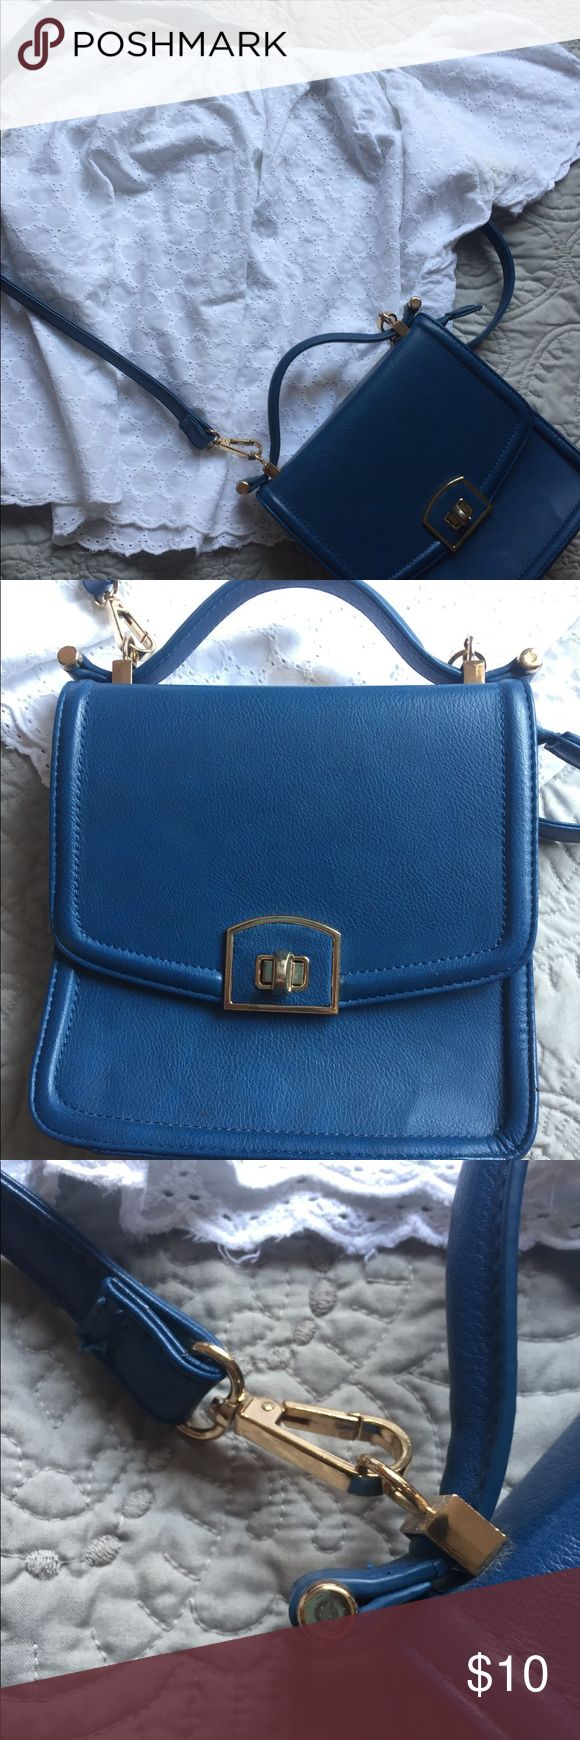 """Blue Boutique purse Faux leather. Small """"briefcase"""" style purse. Used a couple of times Bags Crossbody Bags"""